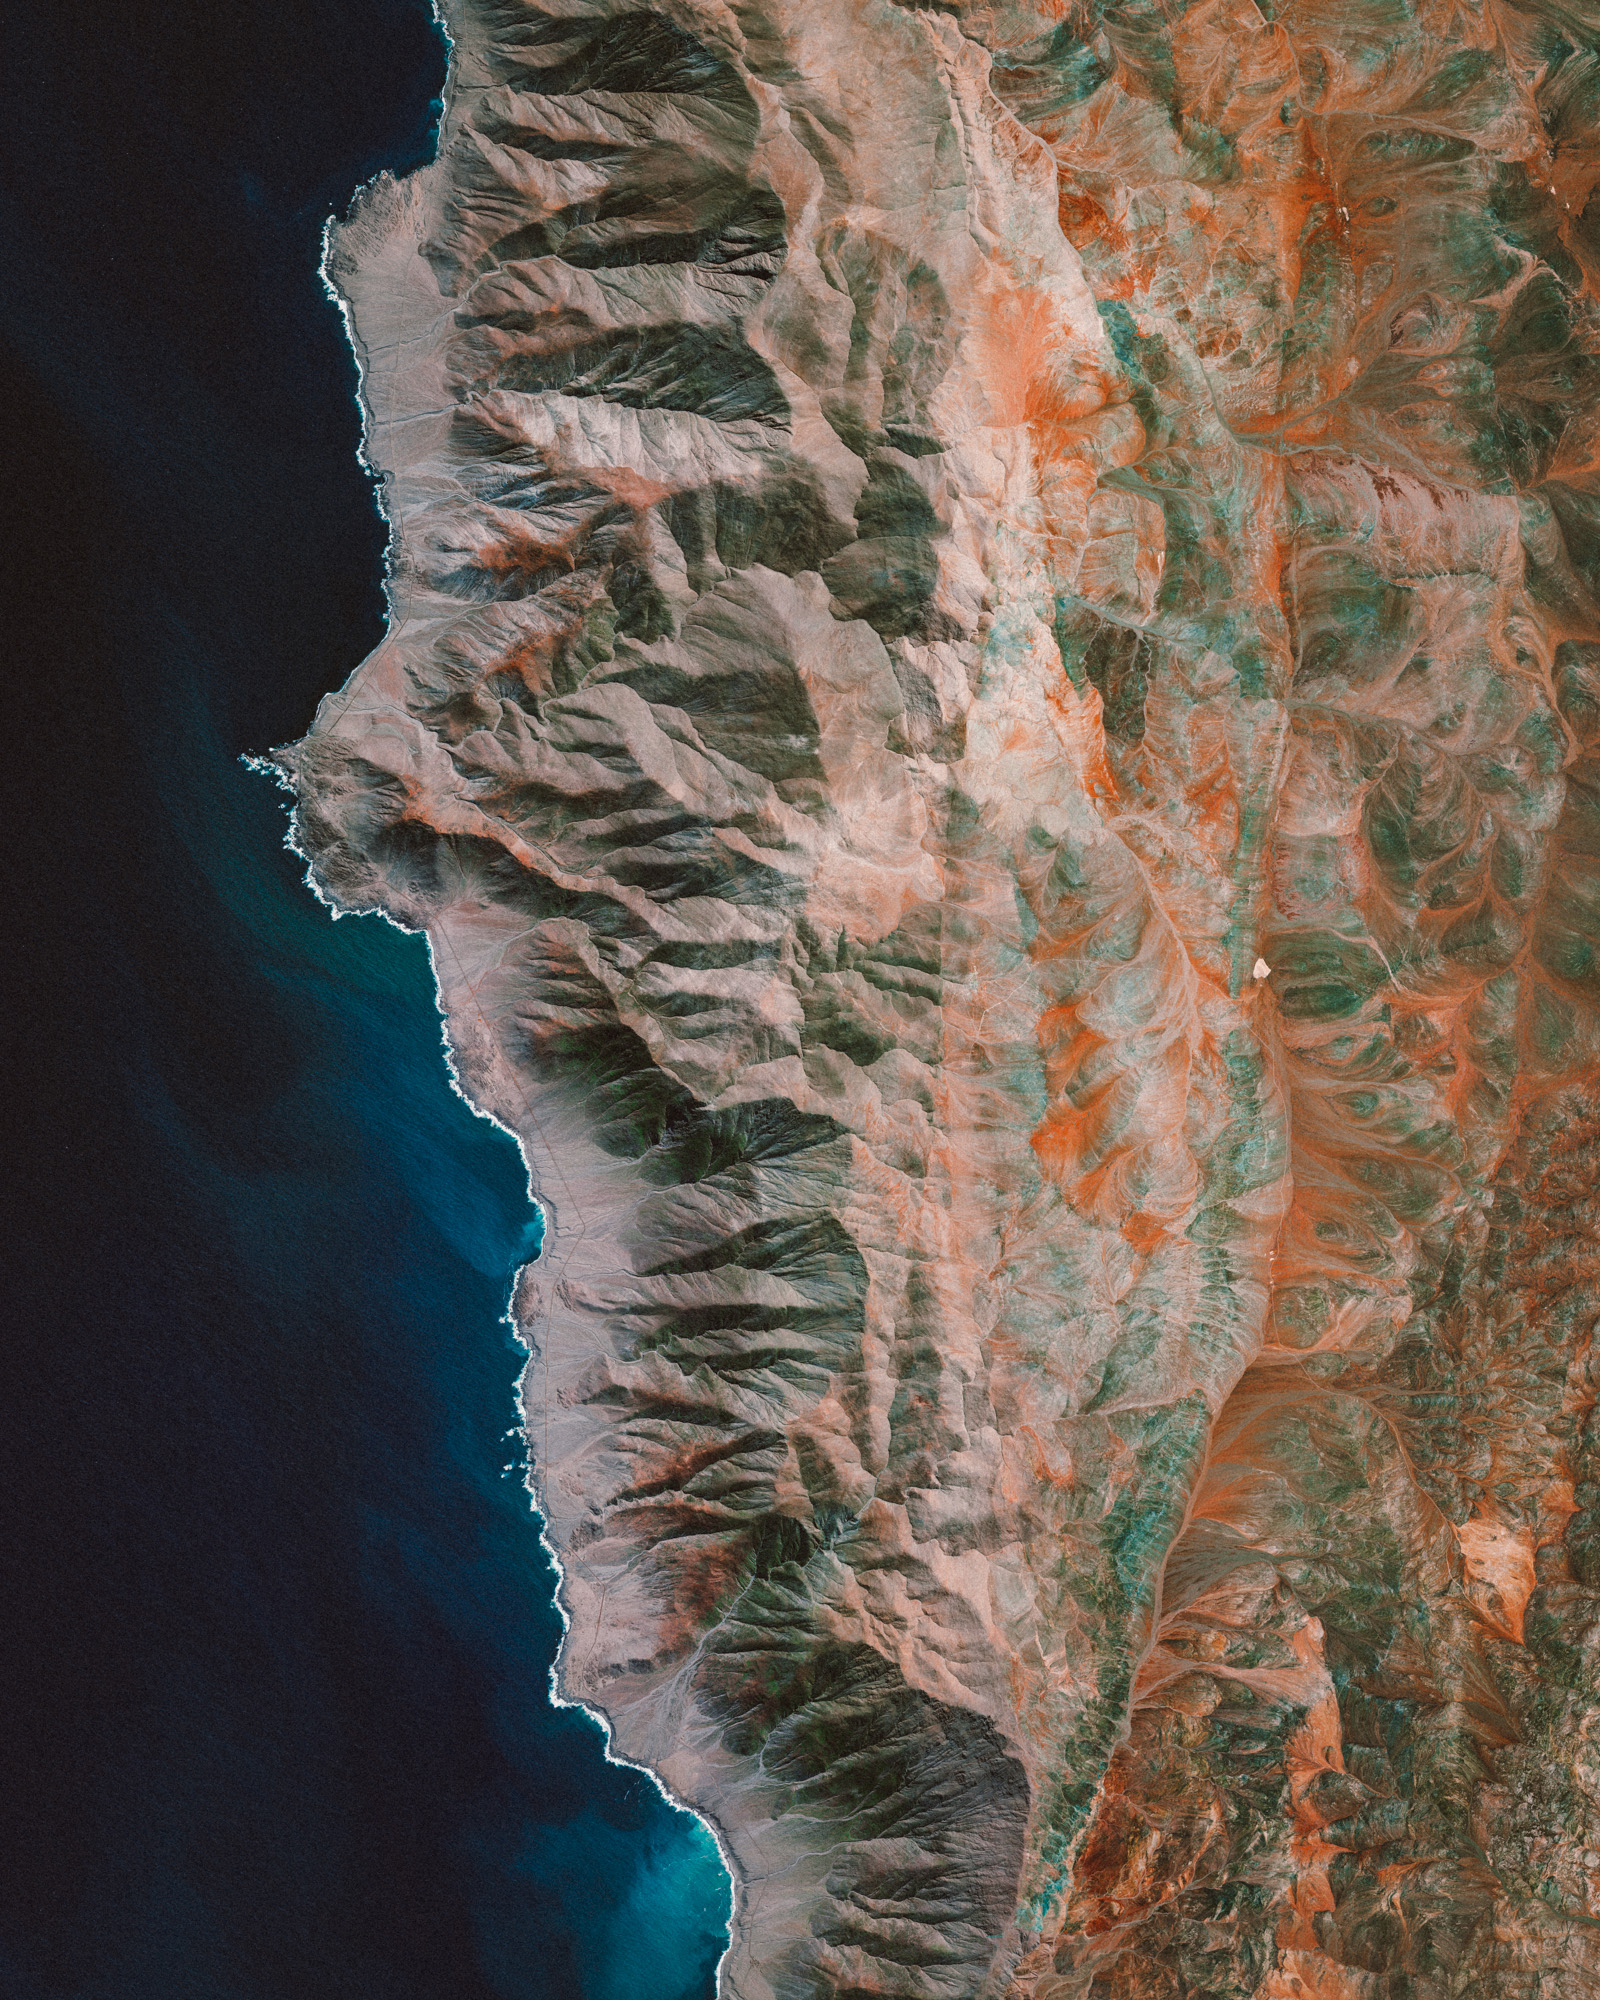 """Check out this amazing Overview of the Chilean Coast Range, which runs along the Pacific coast of Chile. It extends 1,900 miles (3,100 km) from north to south, and this image captures a section near the city of Antofagasta. The highest point in the Chilean Coast Range is Cerro Vicuña Mackenna, which peaks at 10,217 feet (3,114 m).  24°44'14.9""""S, 70°25'37.8""""W  Source imagery: DigitalGlobe"""